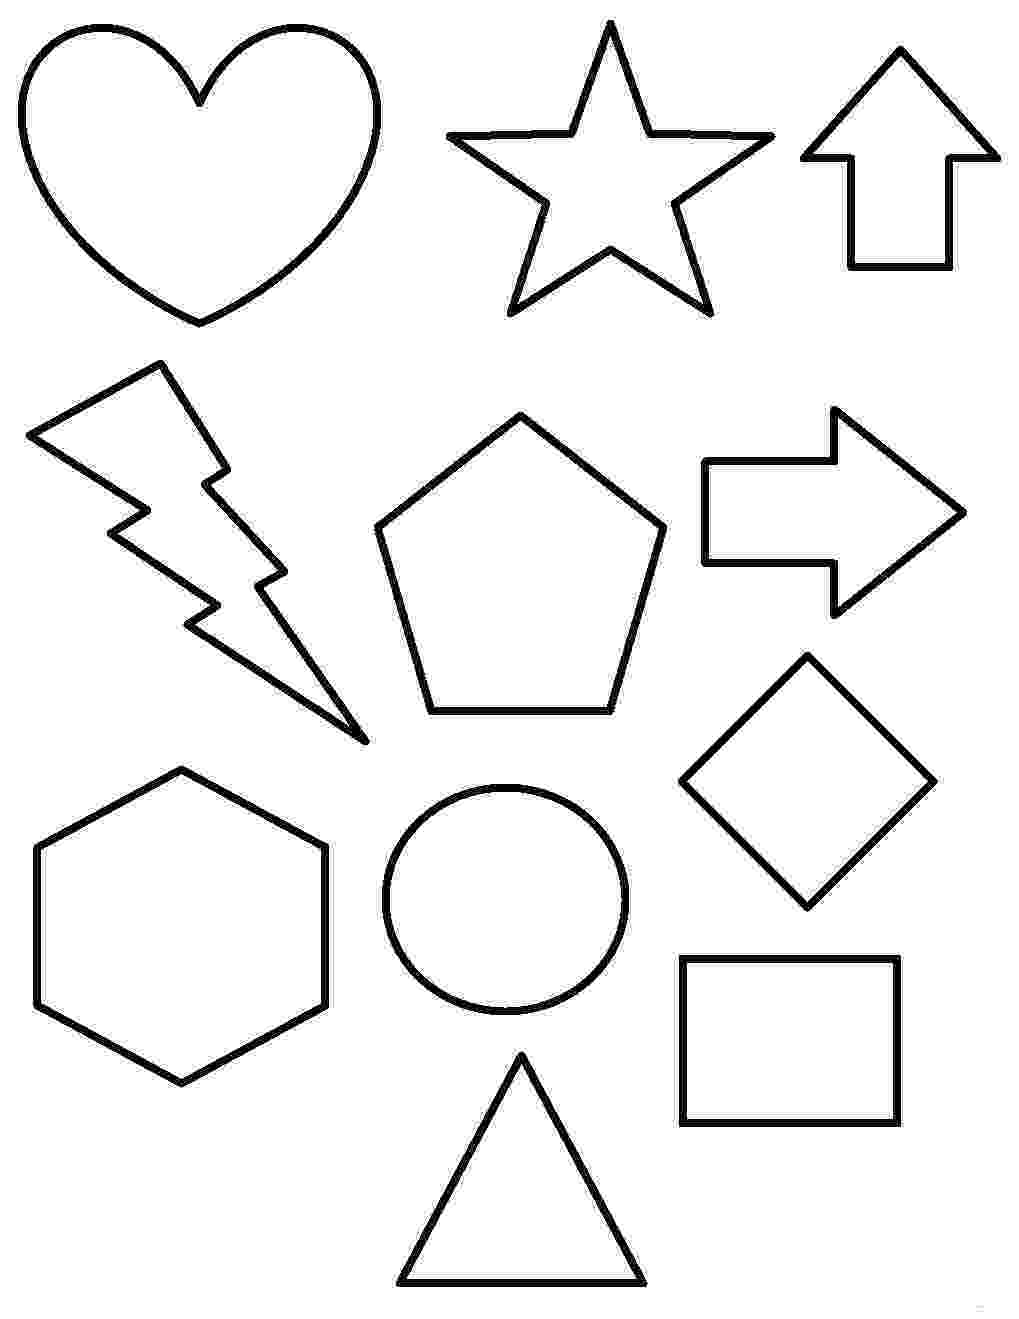 shape coloring page shapes coloring pages for childrens printable for free shape page coloring